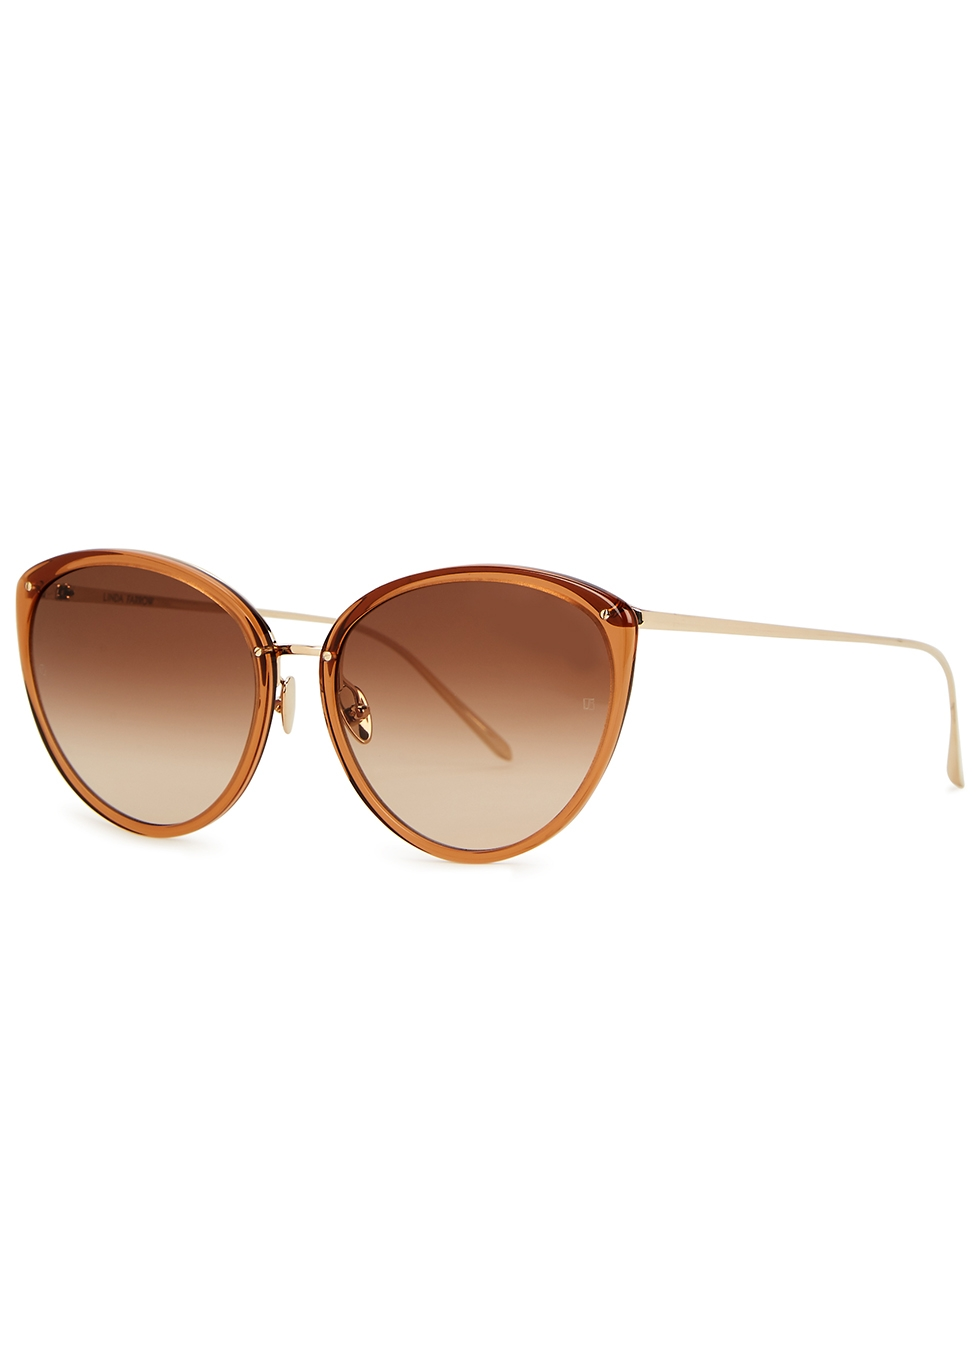 Angelica 22kt gold-plated cat-eye sunglasses